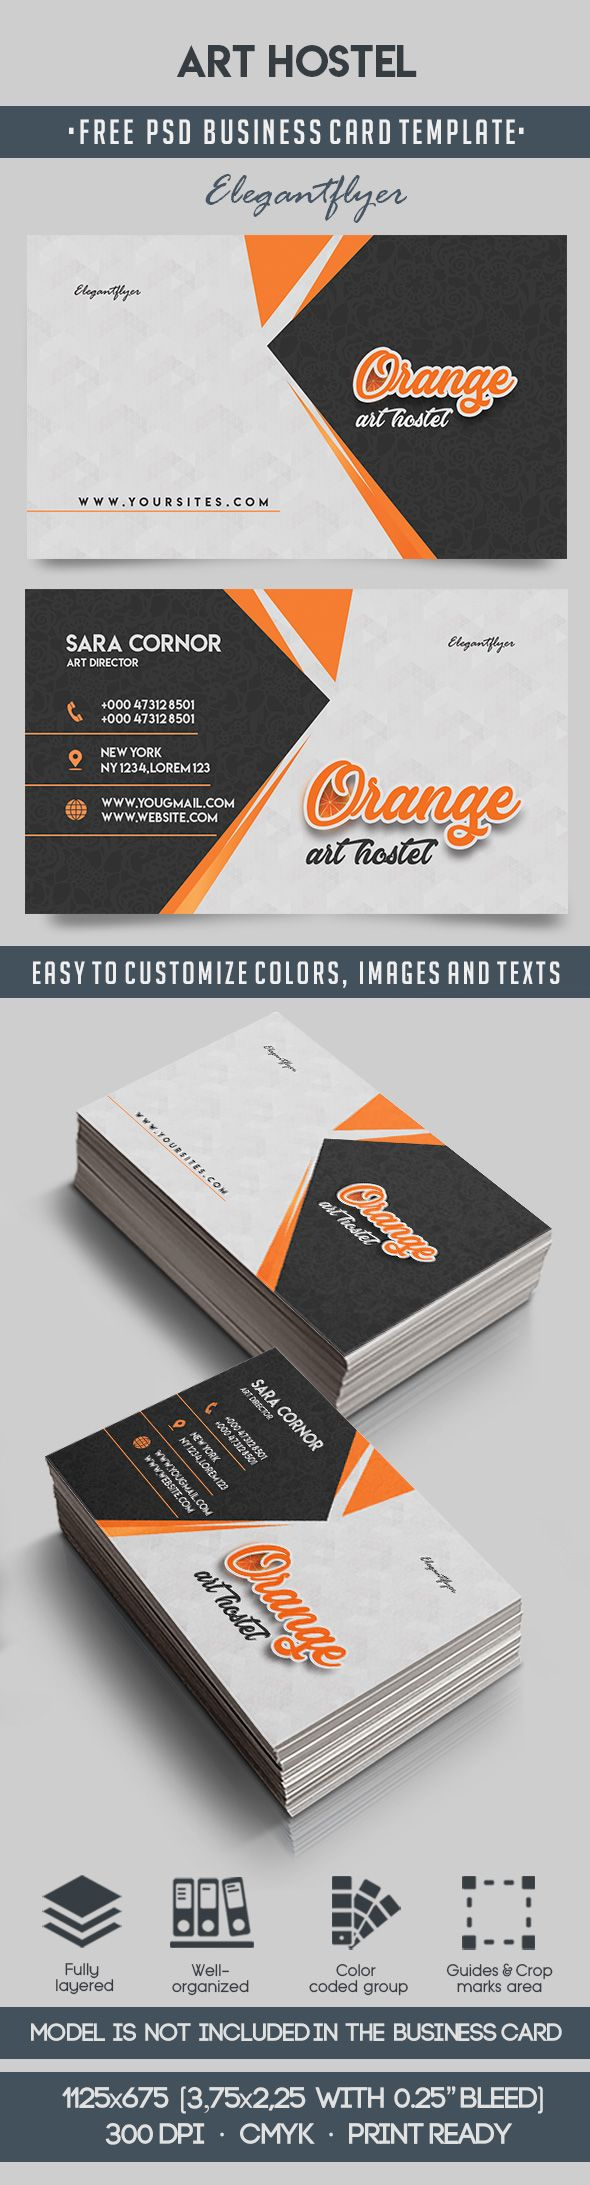 Art hostel free business card templates psd by elegantflyer art hostel free business card templates psd reheart Choice Image